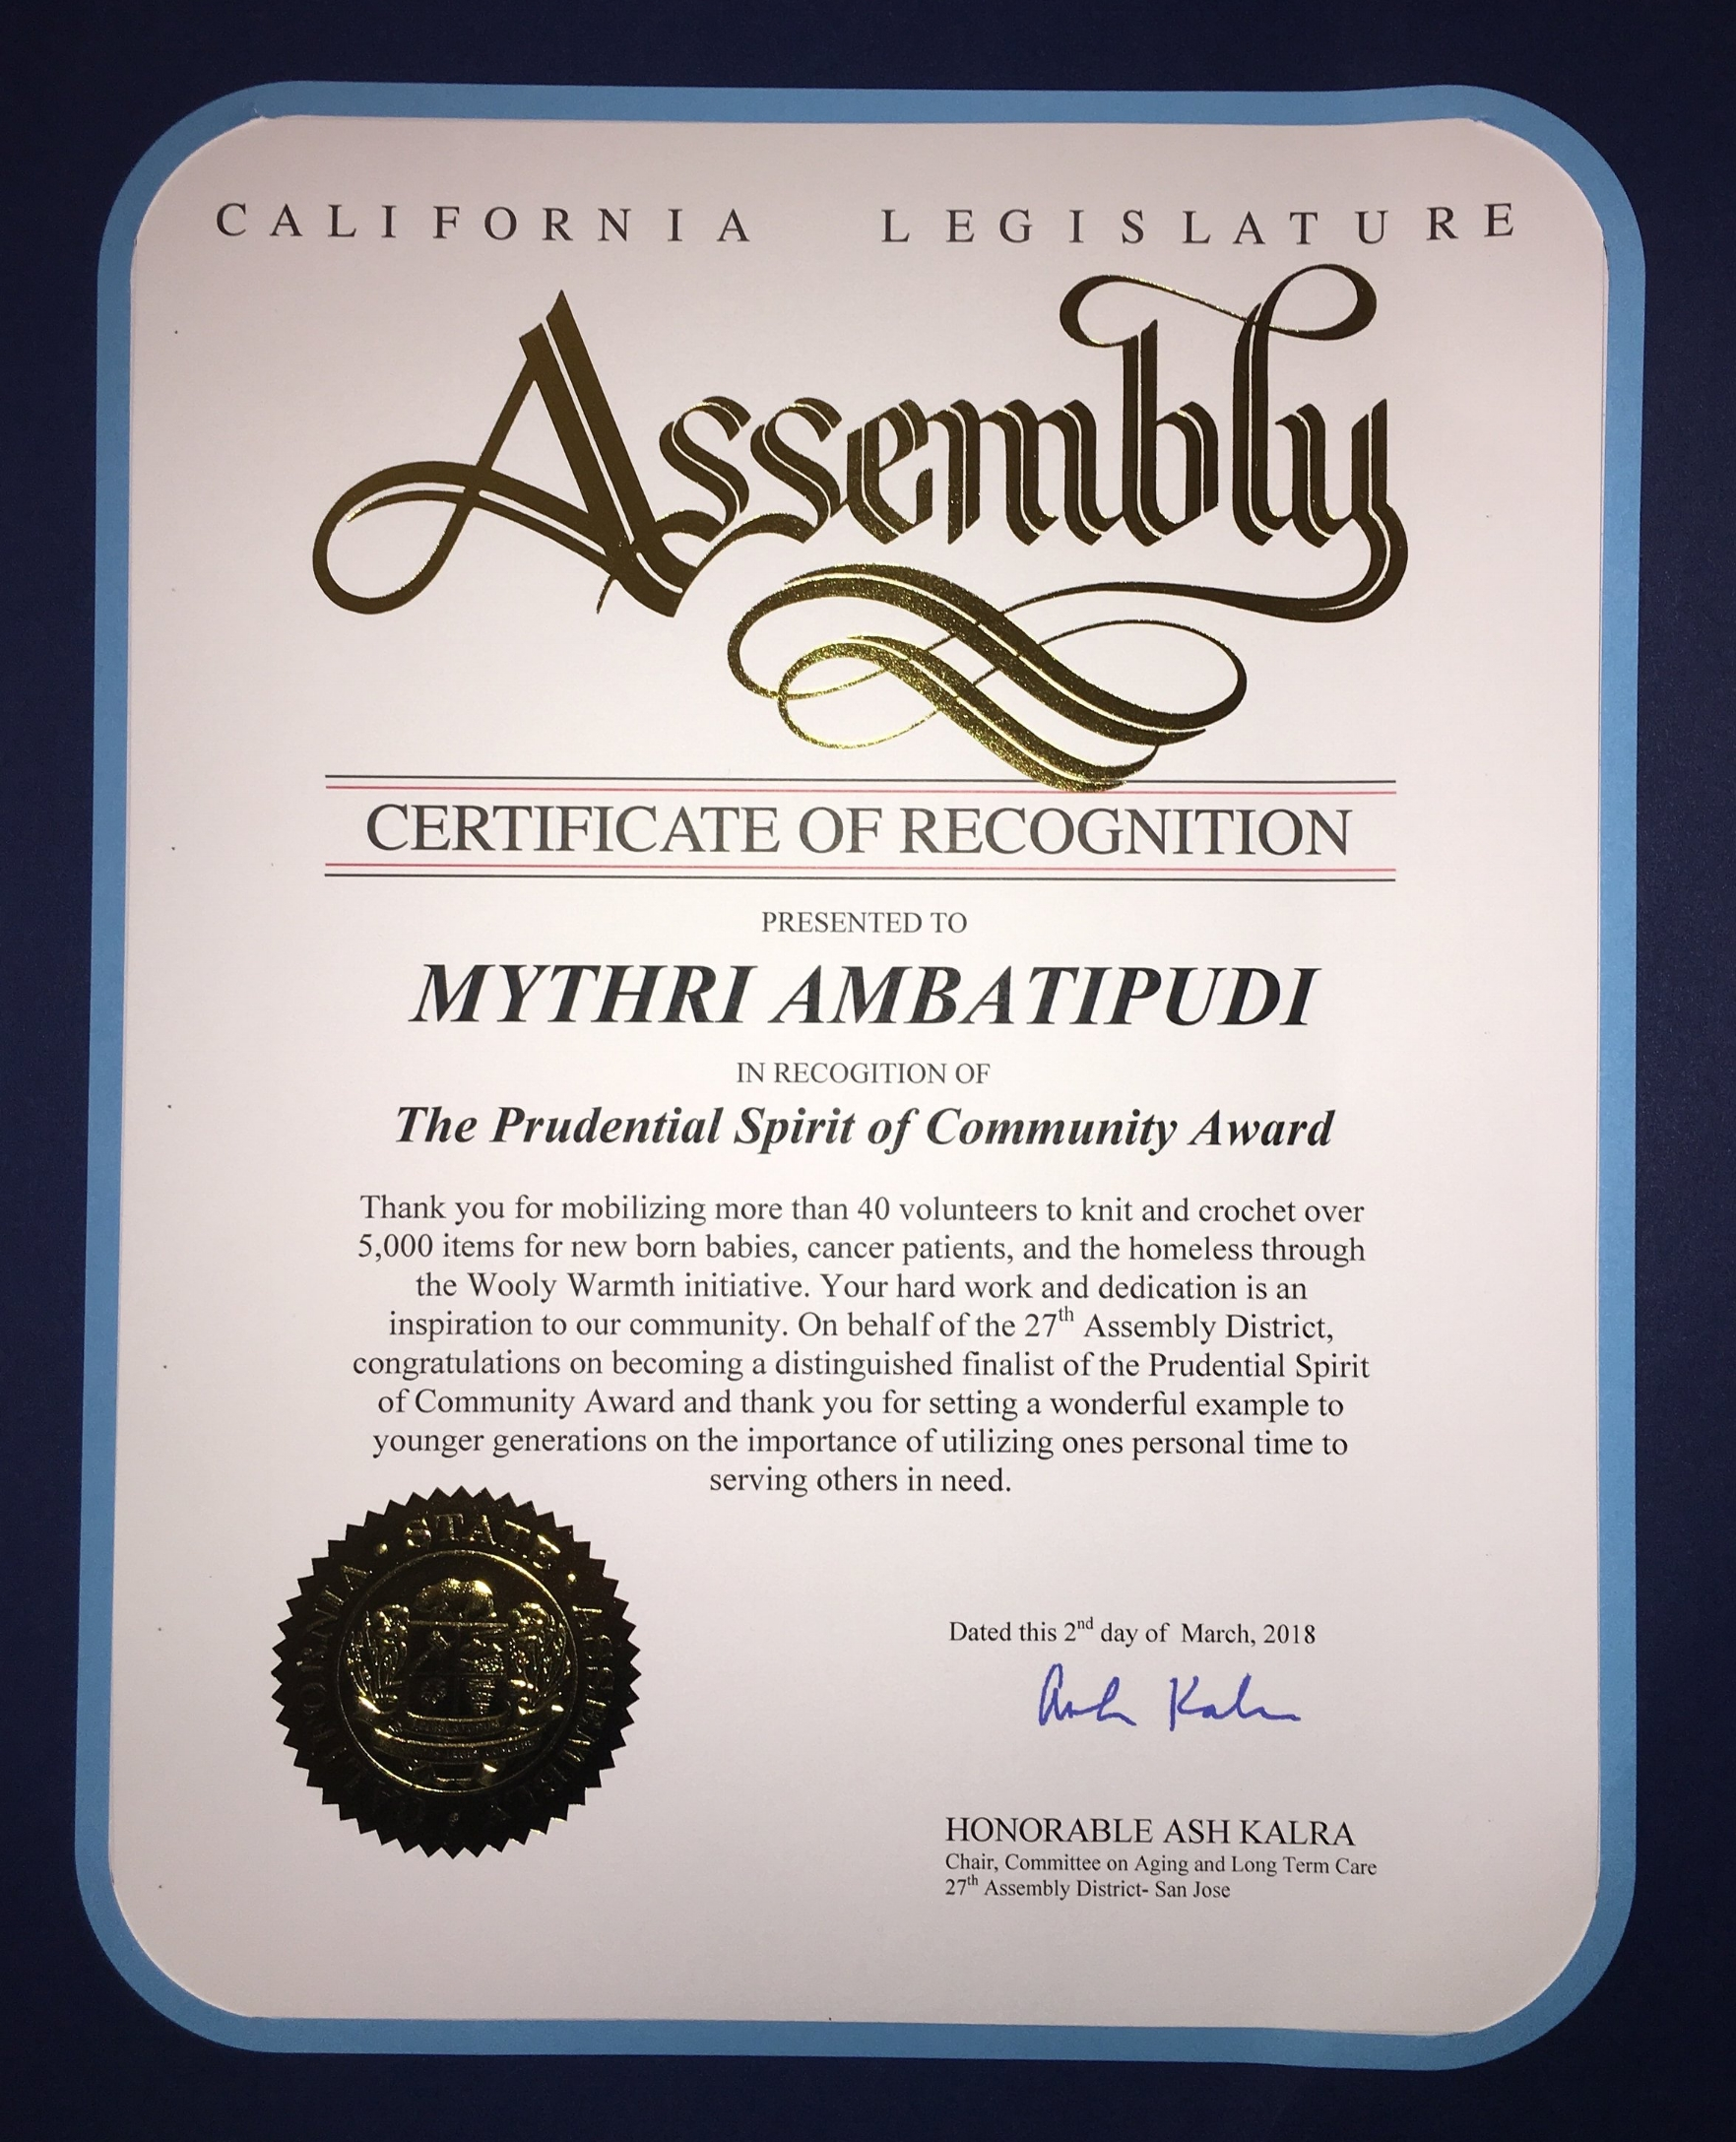 Certificate of Recognition from California Legislature - Mythri was awarded a certificate from the California Legislature in recognition of her Prudential Spirit of Community Award in 2018. This award recognizes her work with WoolyWarmth.